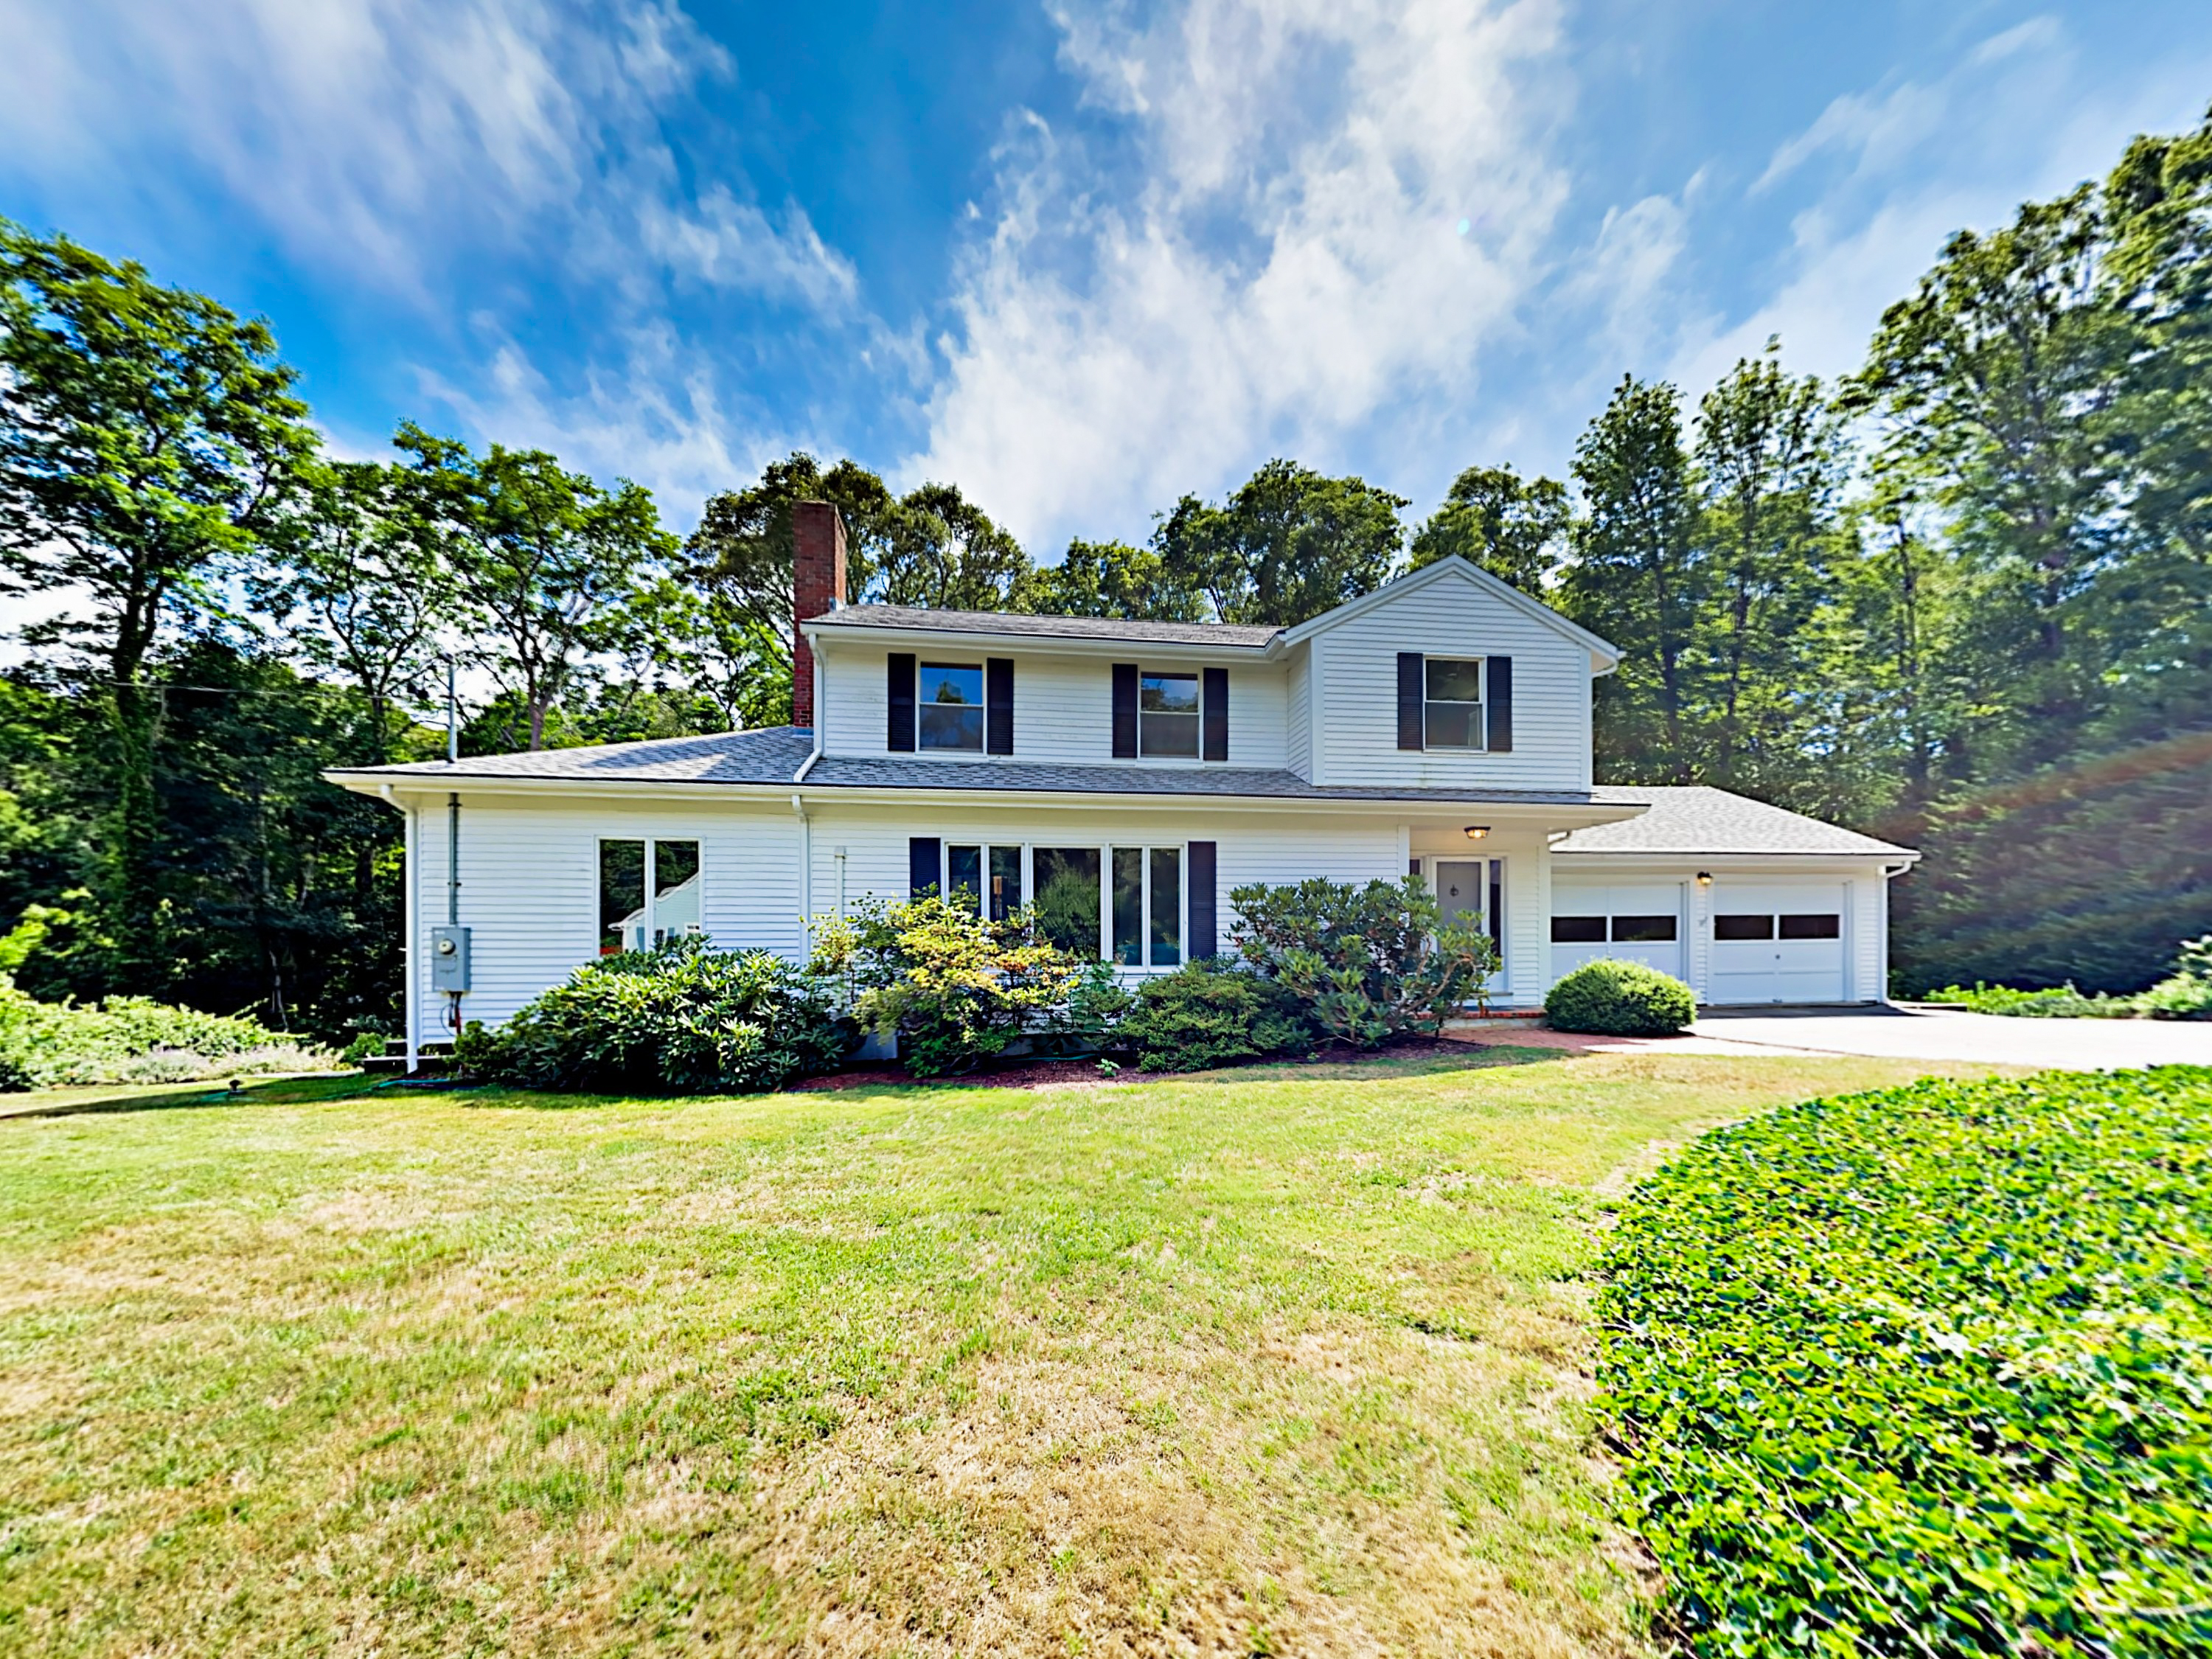 Falmouth MA Vacation Rental Welcome to Cape